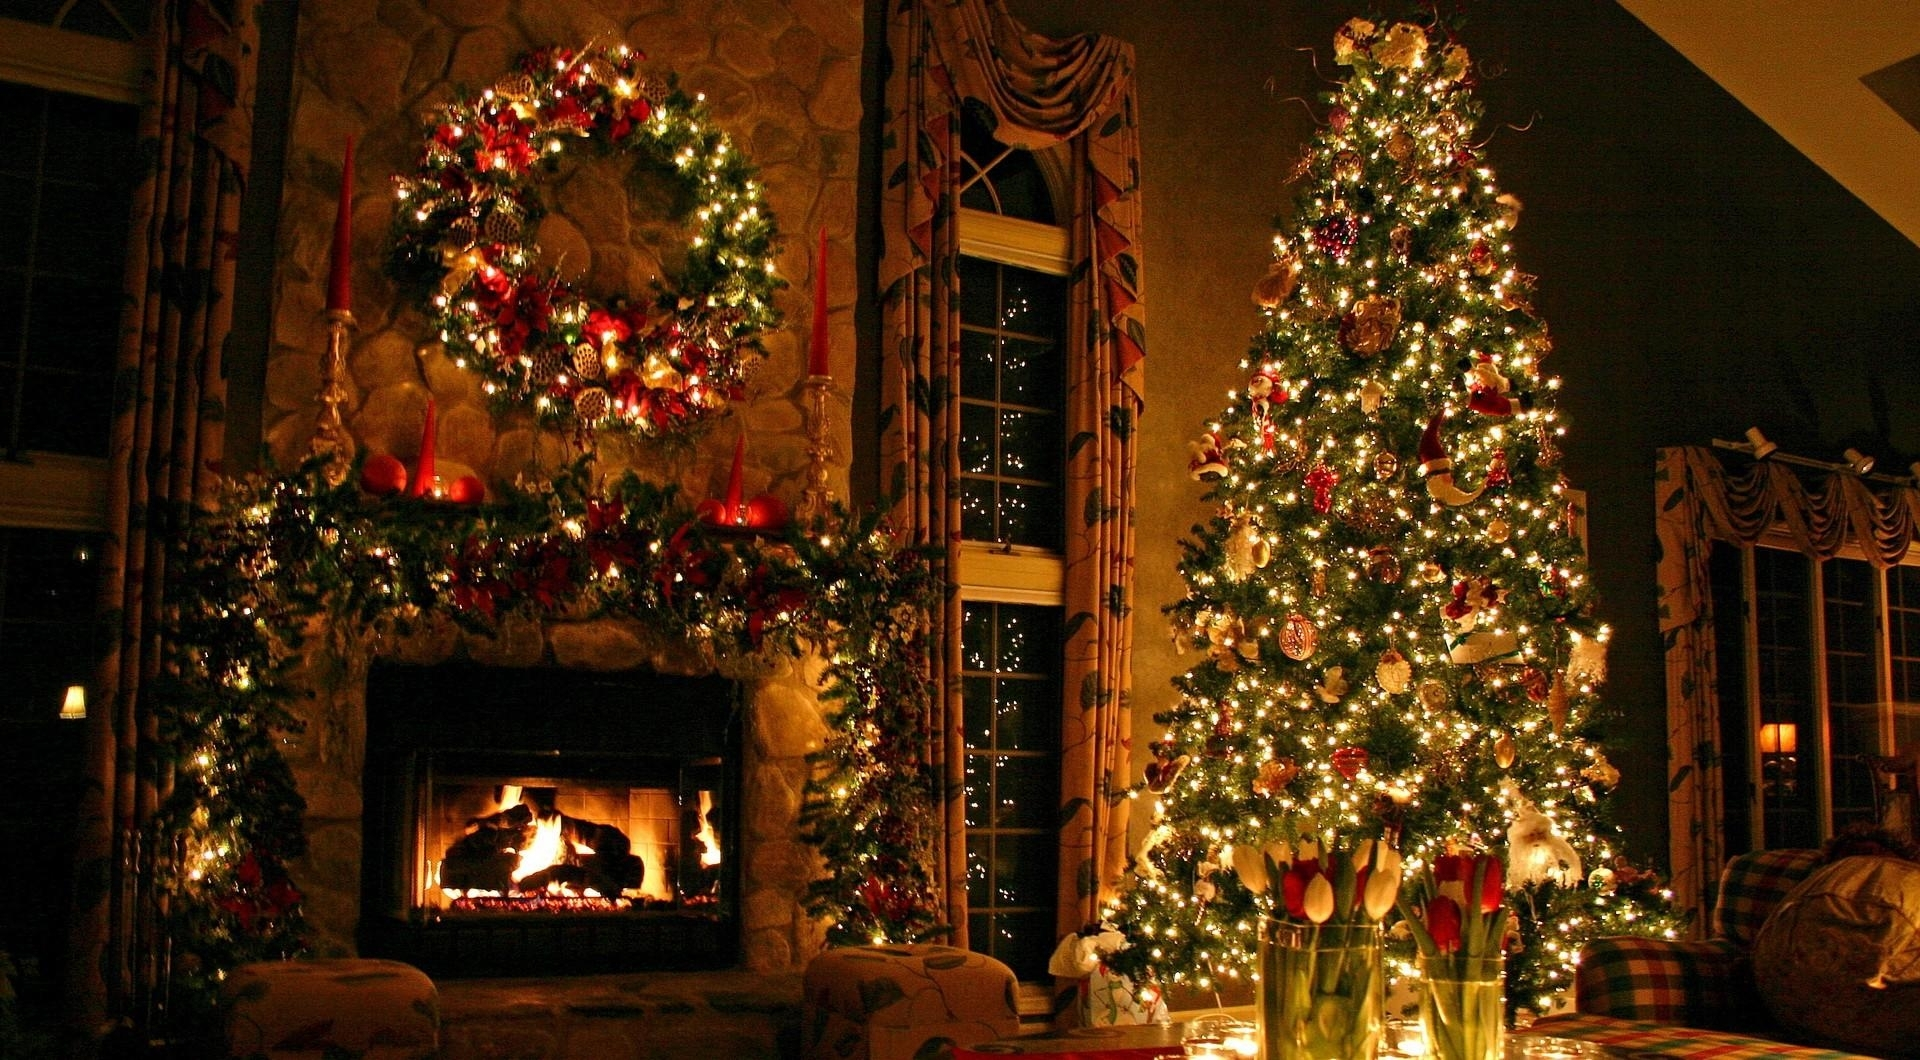 10 decorations that will suit your home this christmas nigeria real estate christmas decorations home - Decorations For Homes